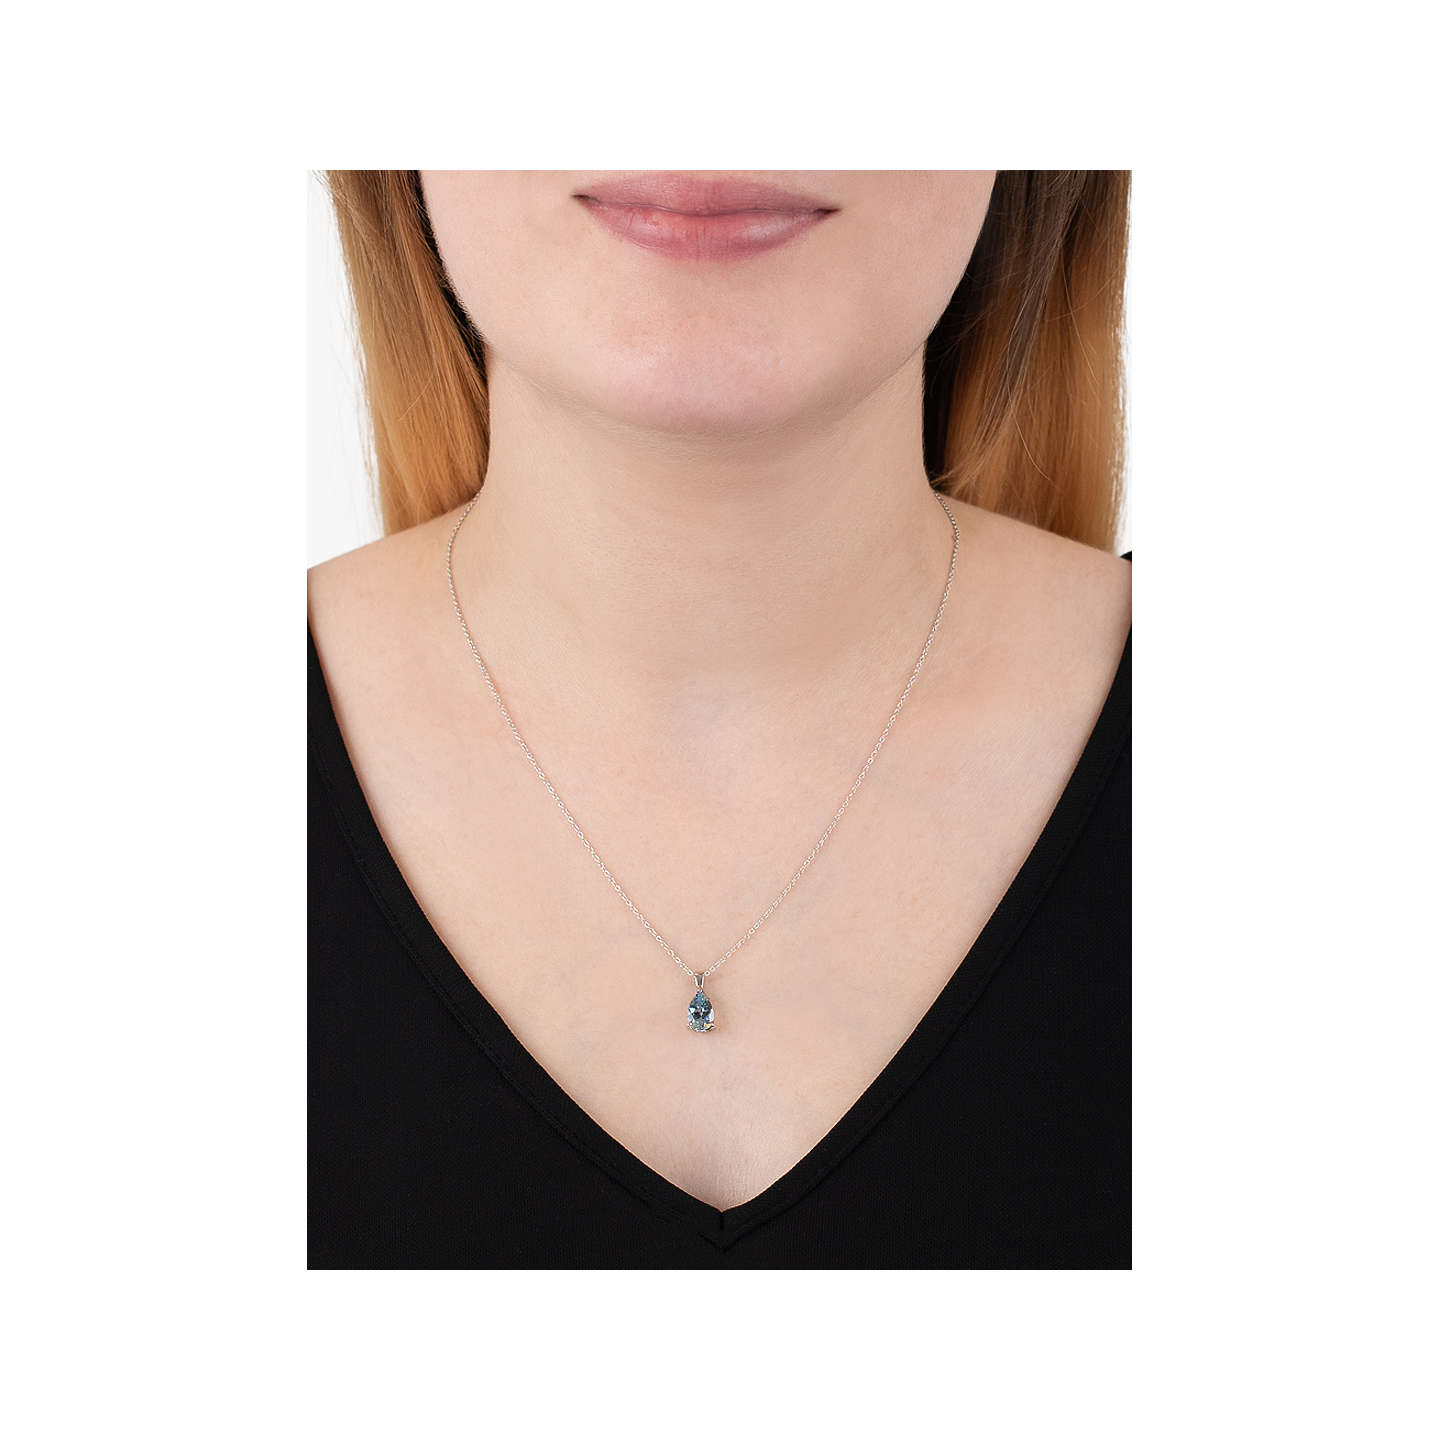 pendant products large fullsizerender quartz jewelry martha necklace teardrop ponn designs crystal